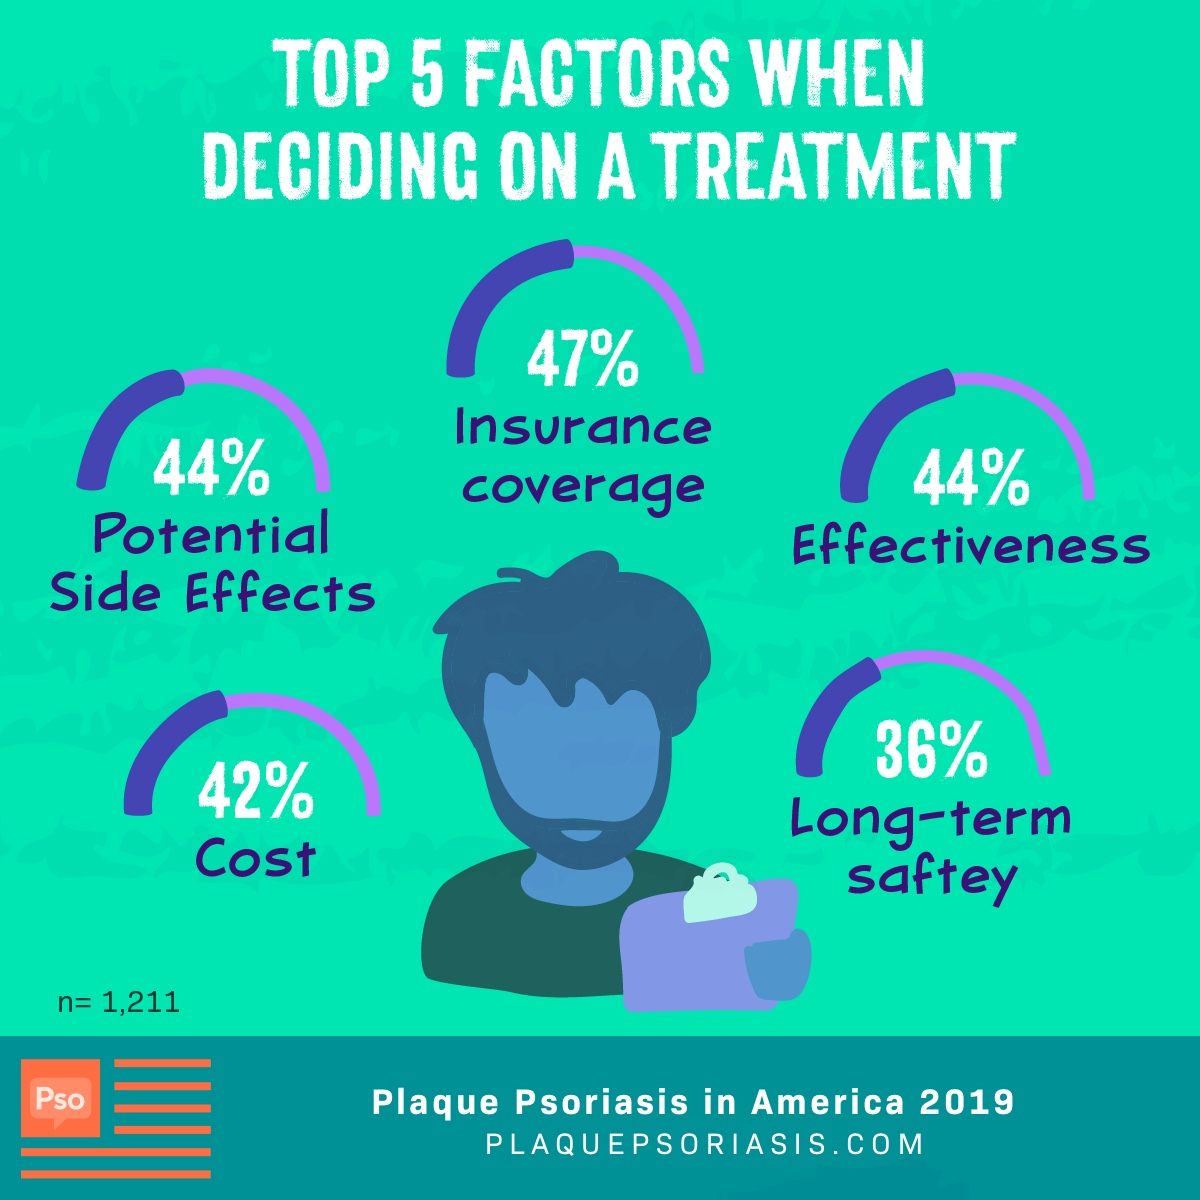 When deciding on treatment the top 5 factors patients consider are insurance coverage, side effects, effectiveness, cost and long-term safety.